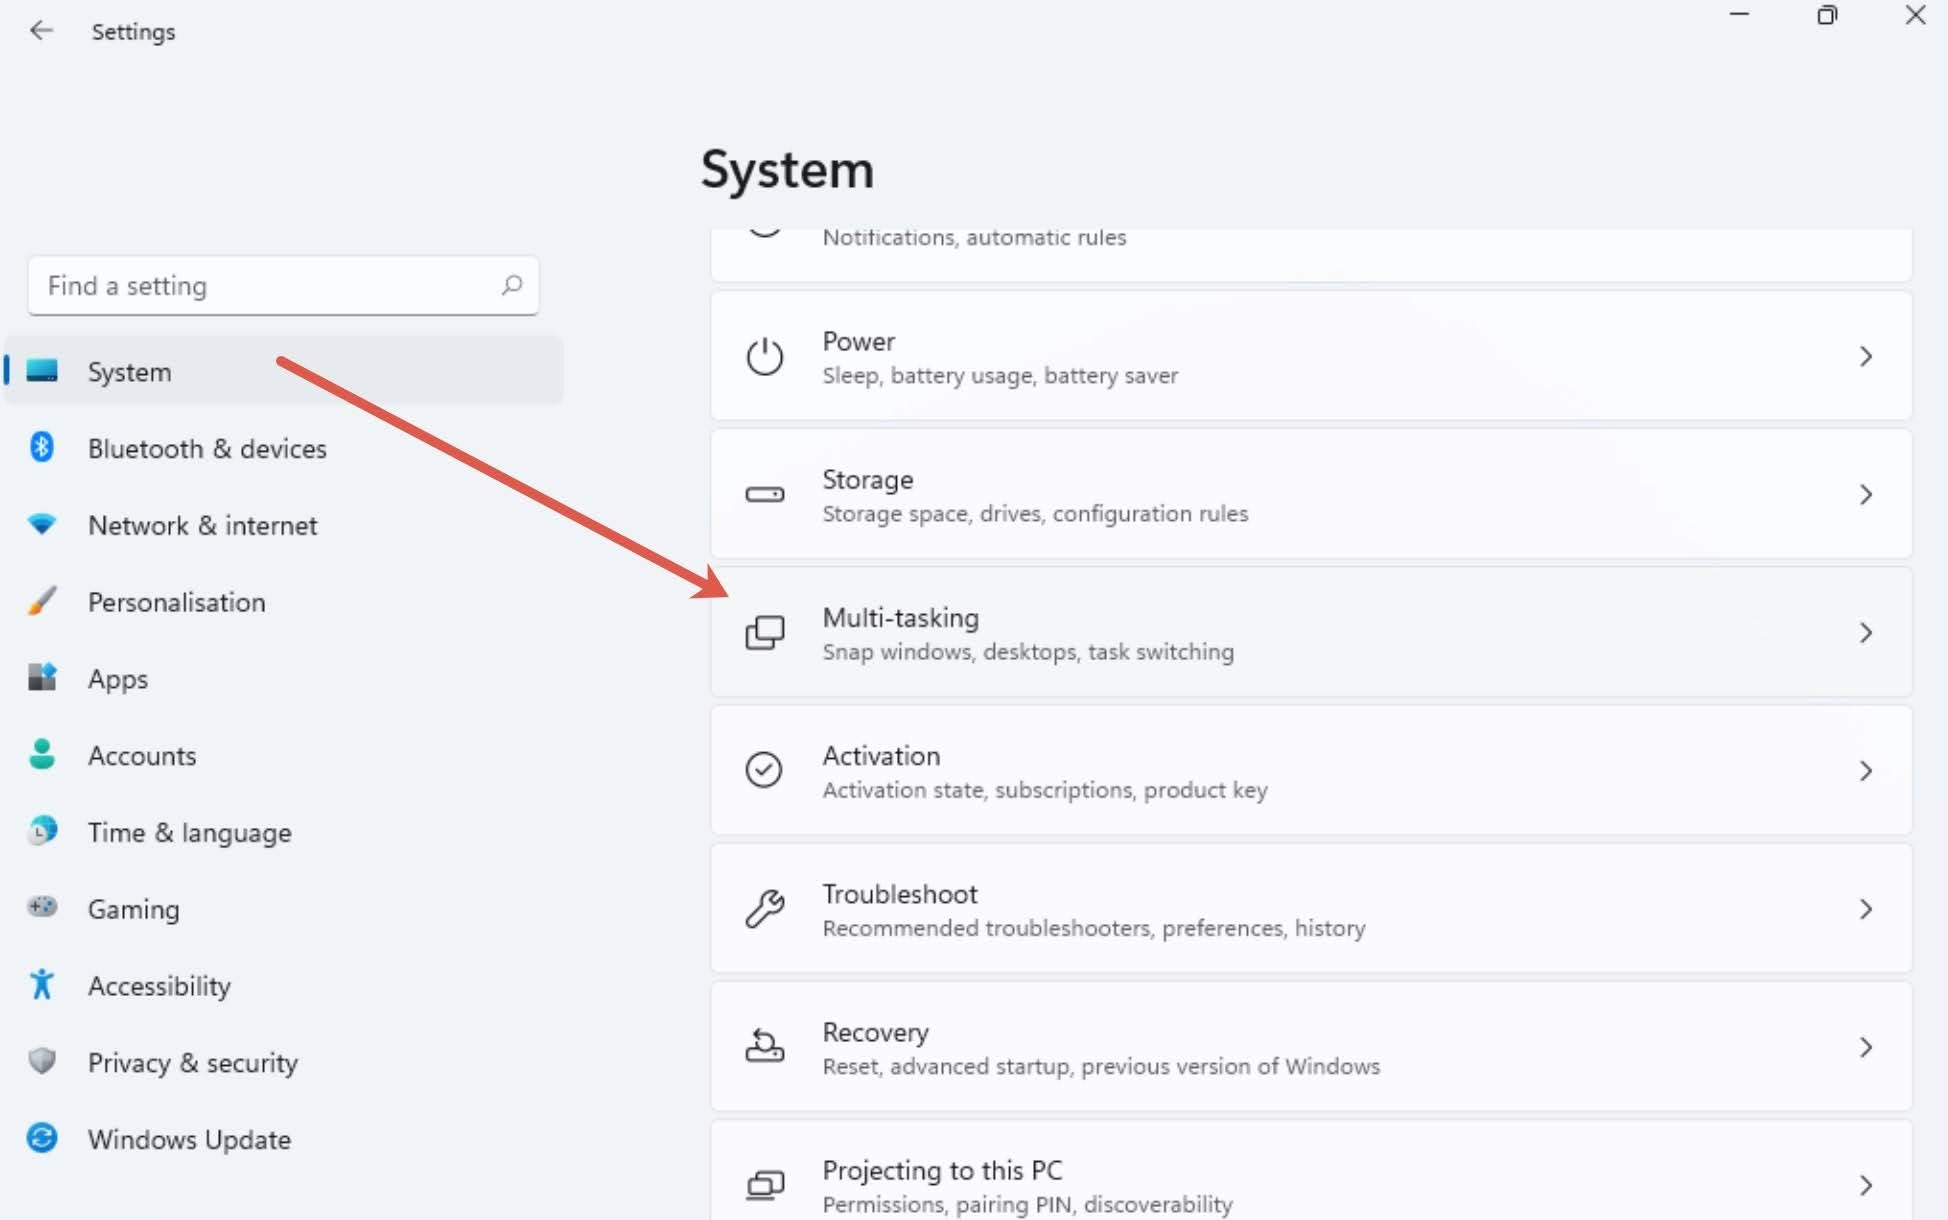 Click on the System on the left sidebar and then Multi-tasking section.